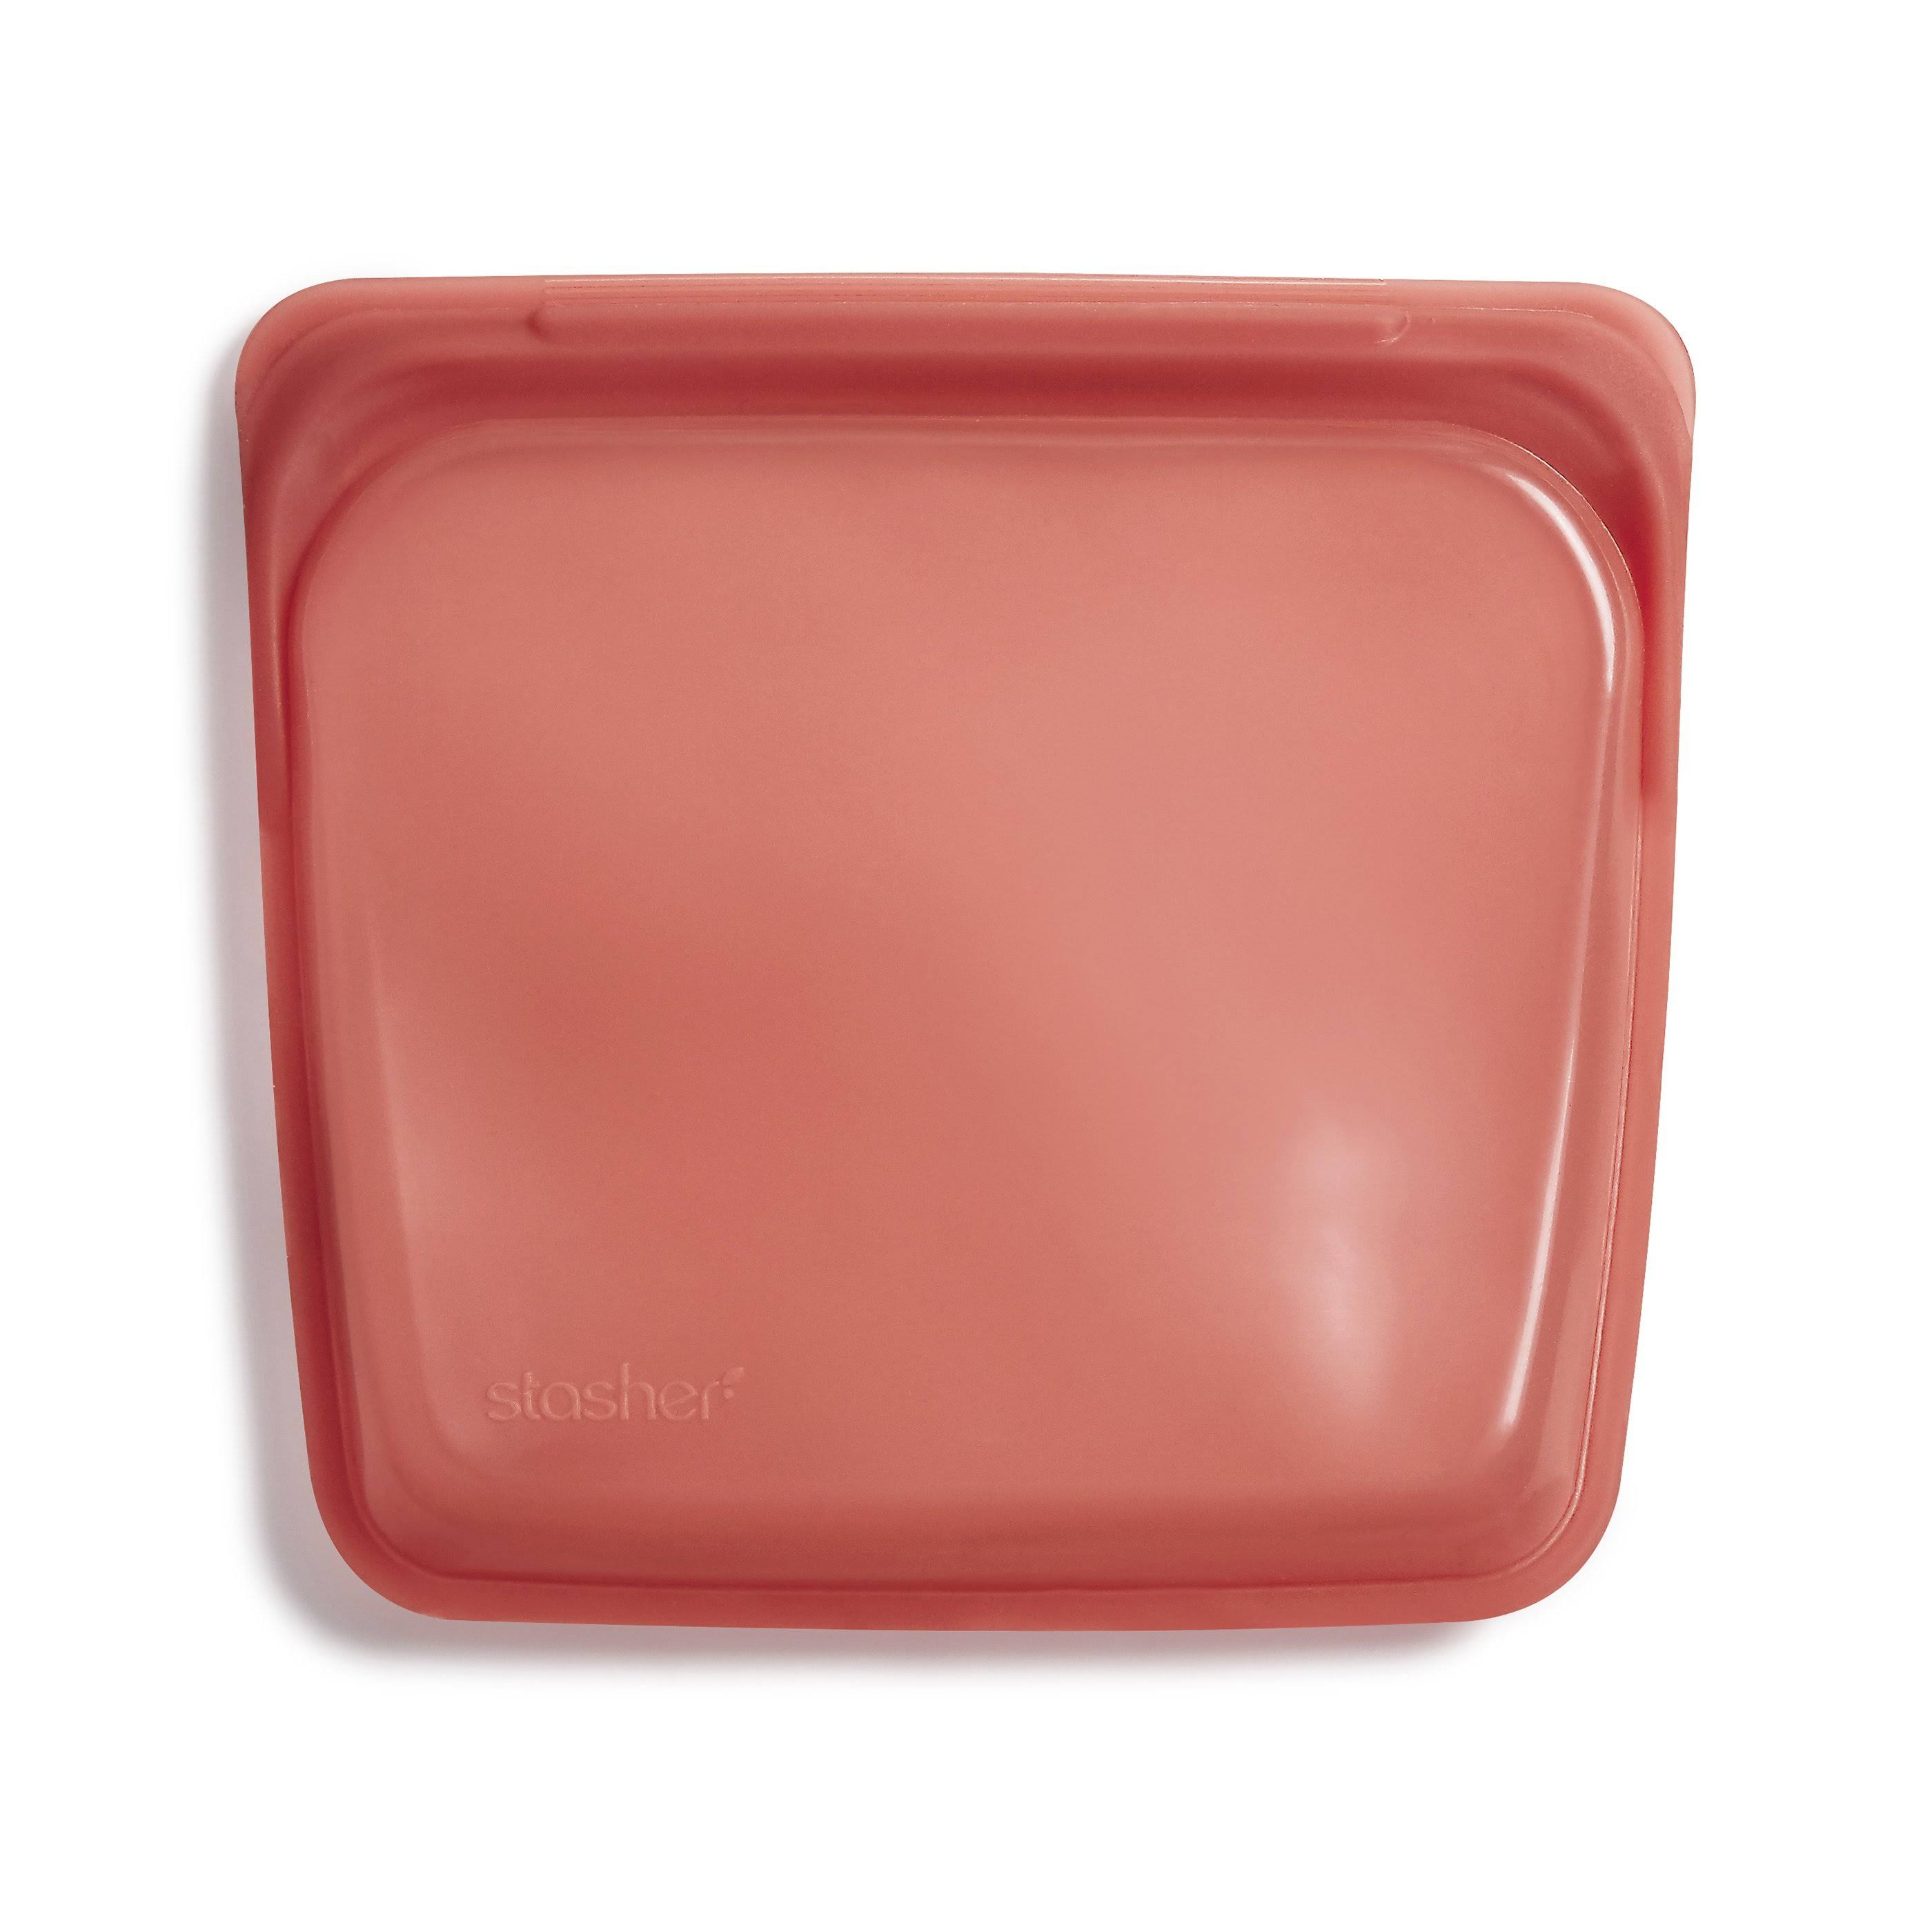 Stasher- Reusable Silicone Sandwich Bag Terra Cotta